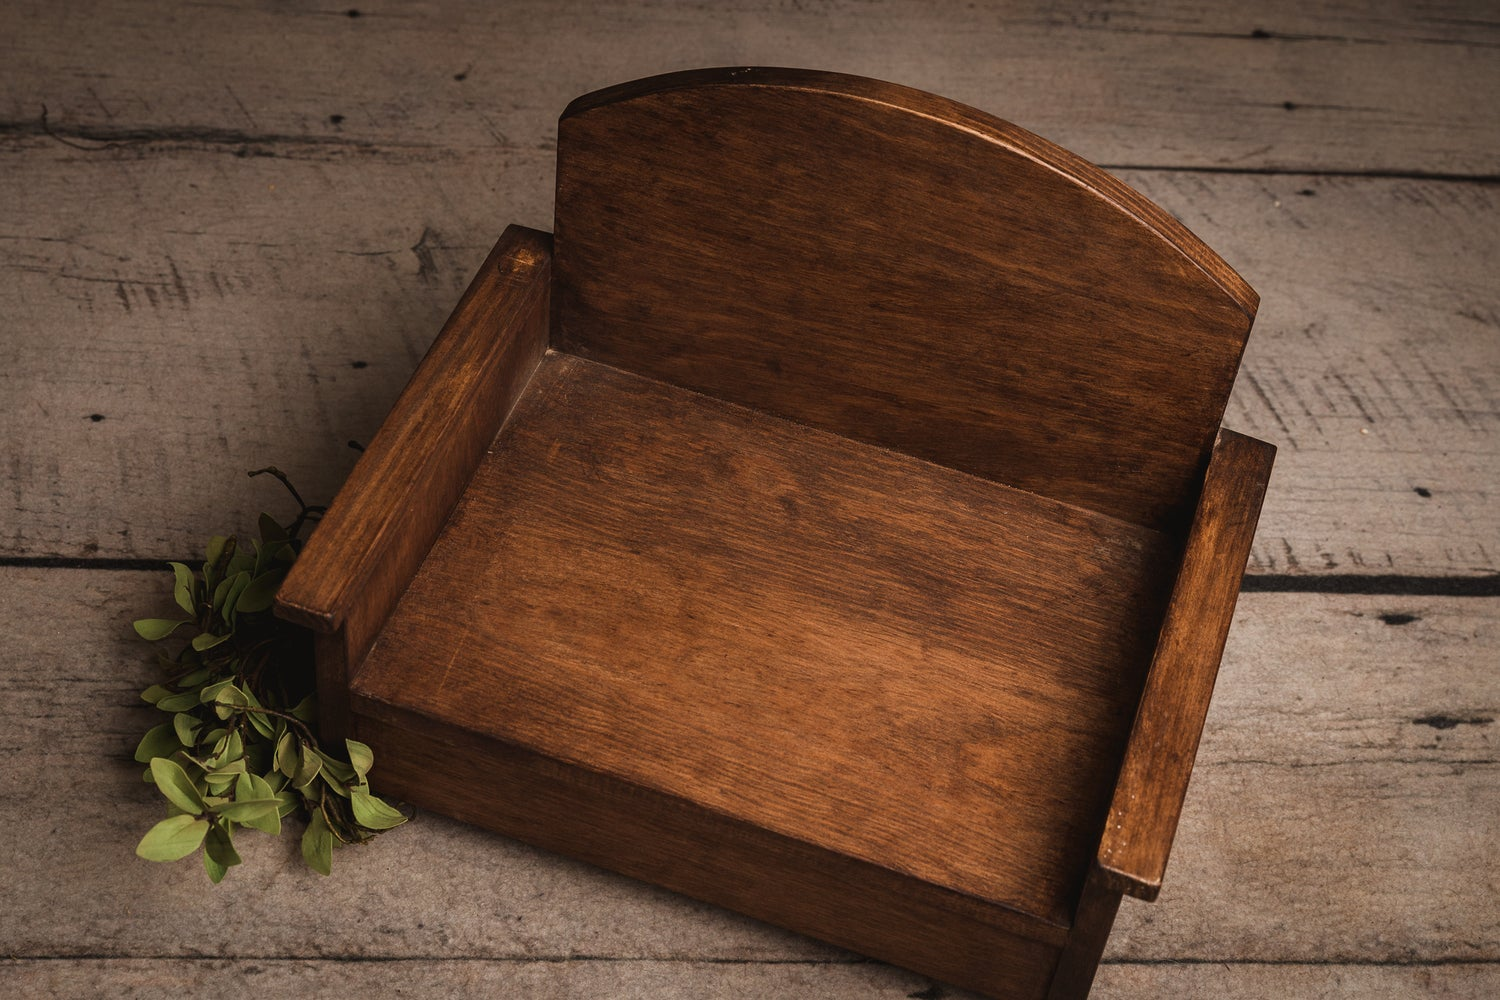 Image of Wooden Mini Couch